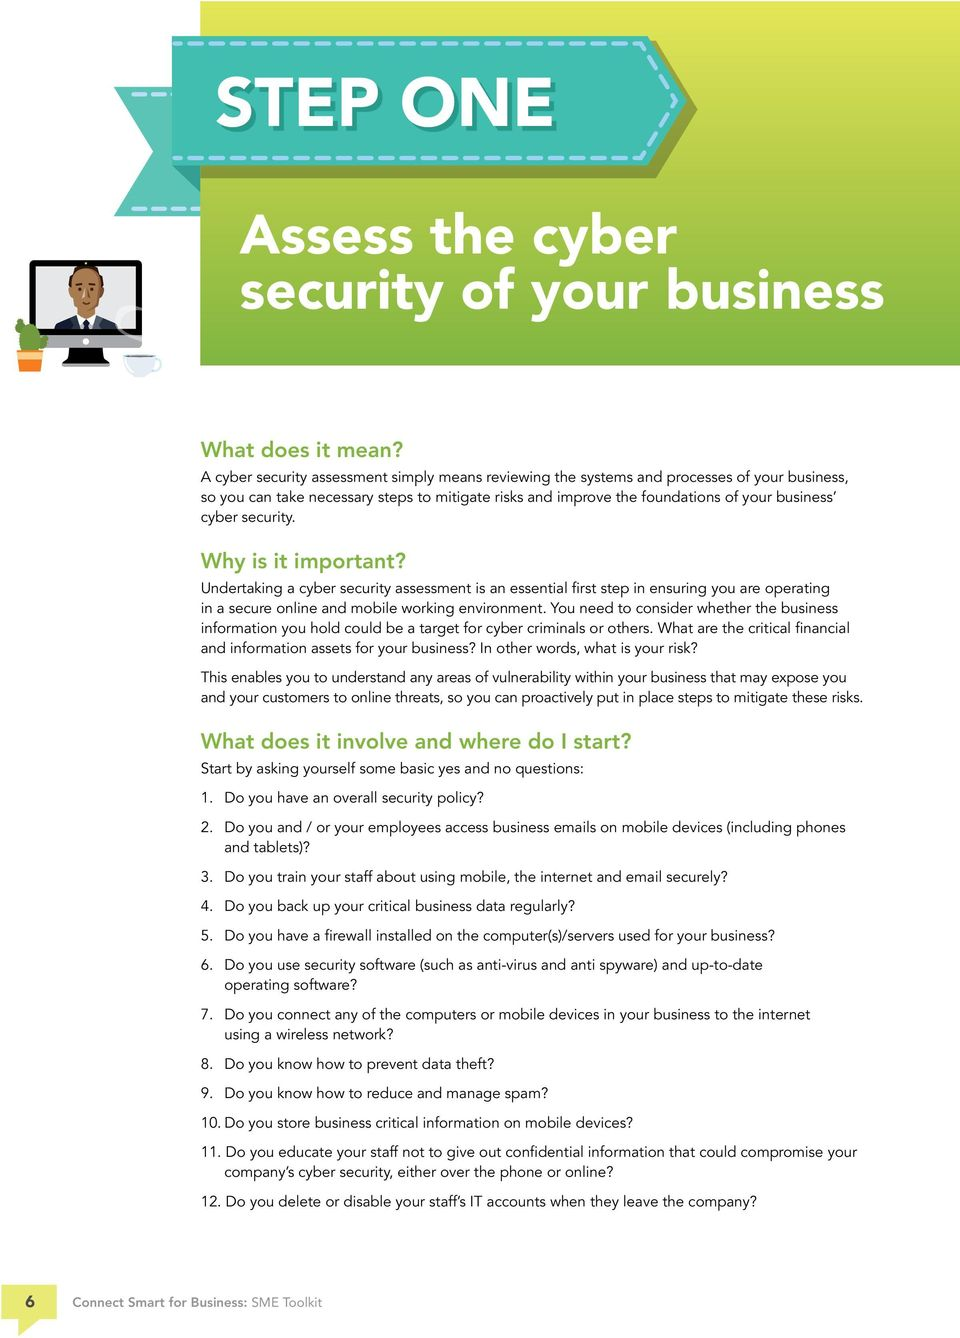 security. Why is it important? Undertaking a cyber security assessment is an essential first step in ensuring you are operating in a secure online and mobile working environment.